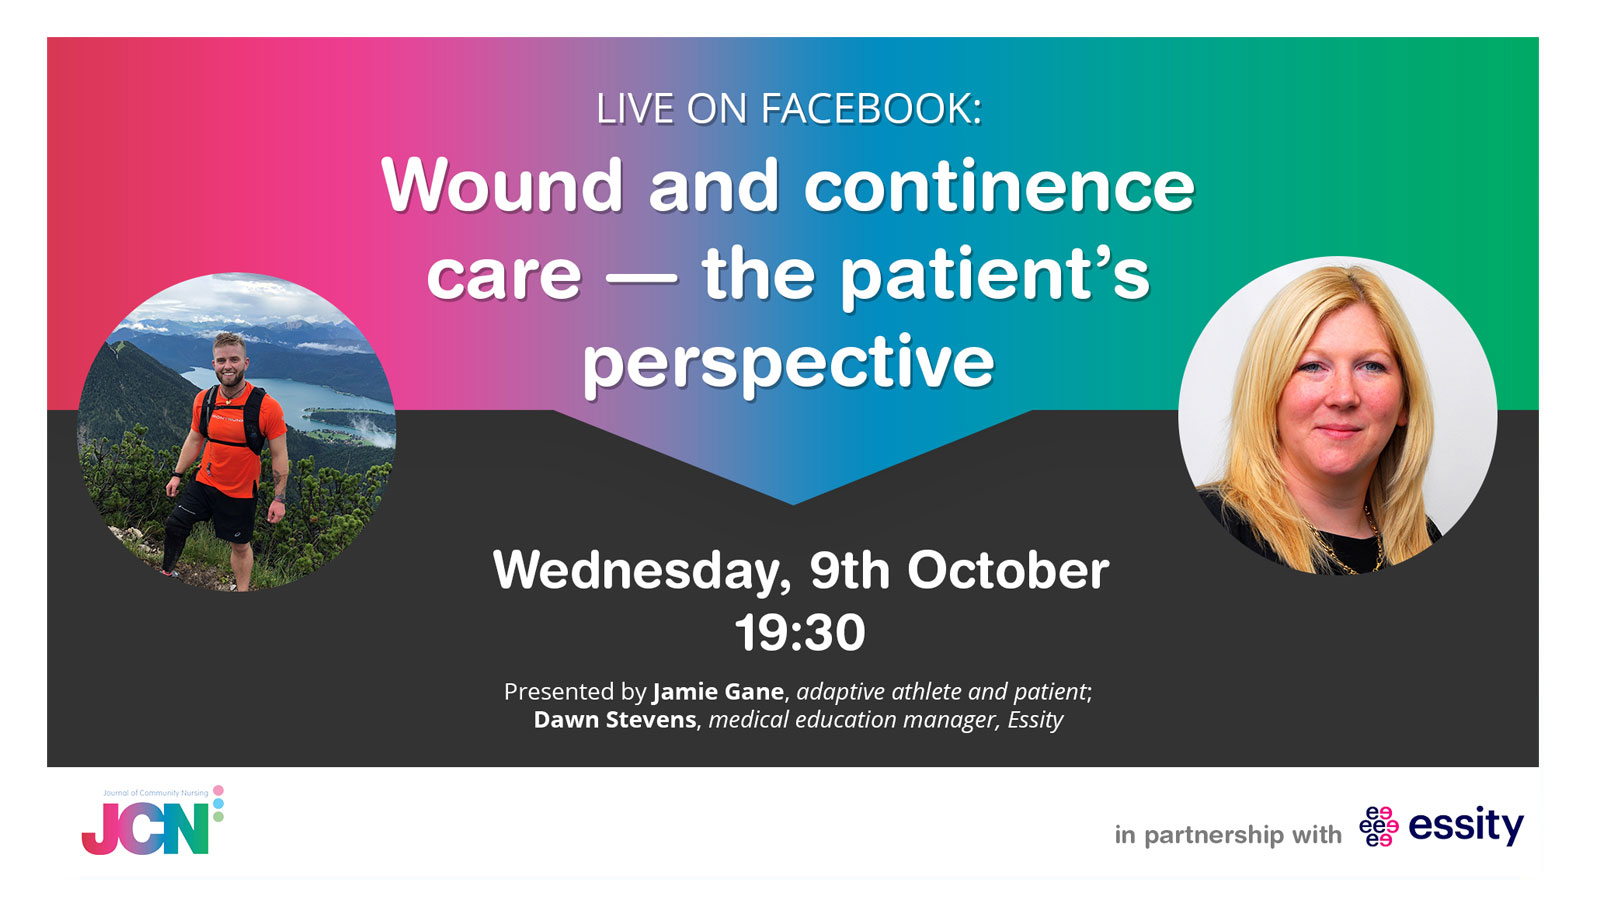 Facebook Live: Wound and continence care: A patient's perspective